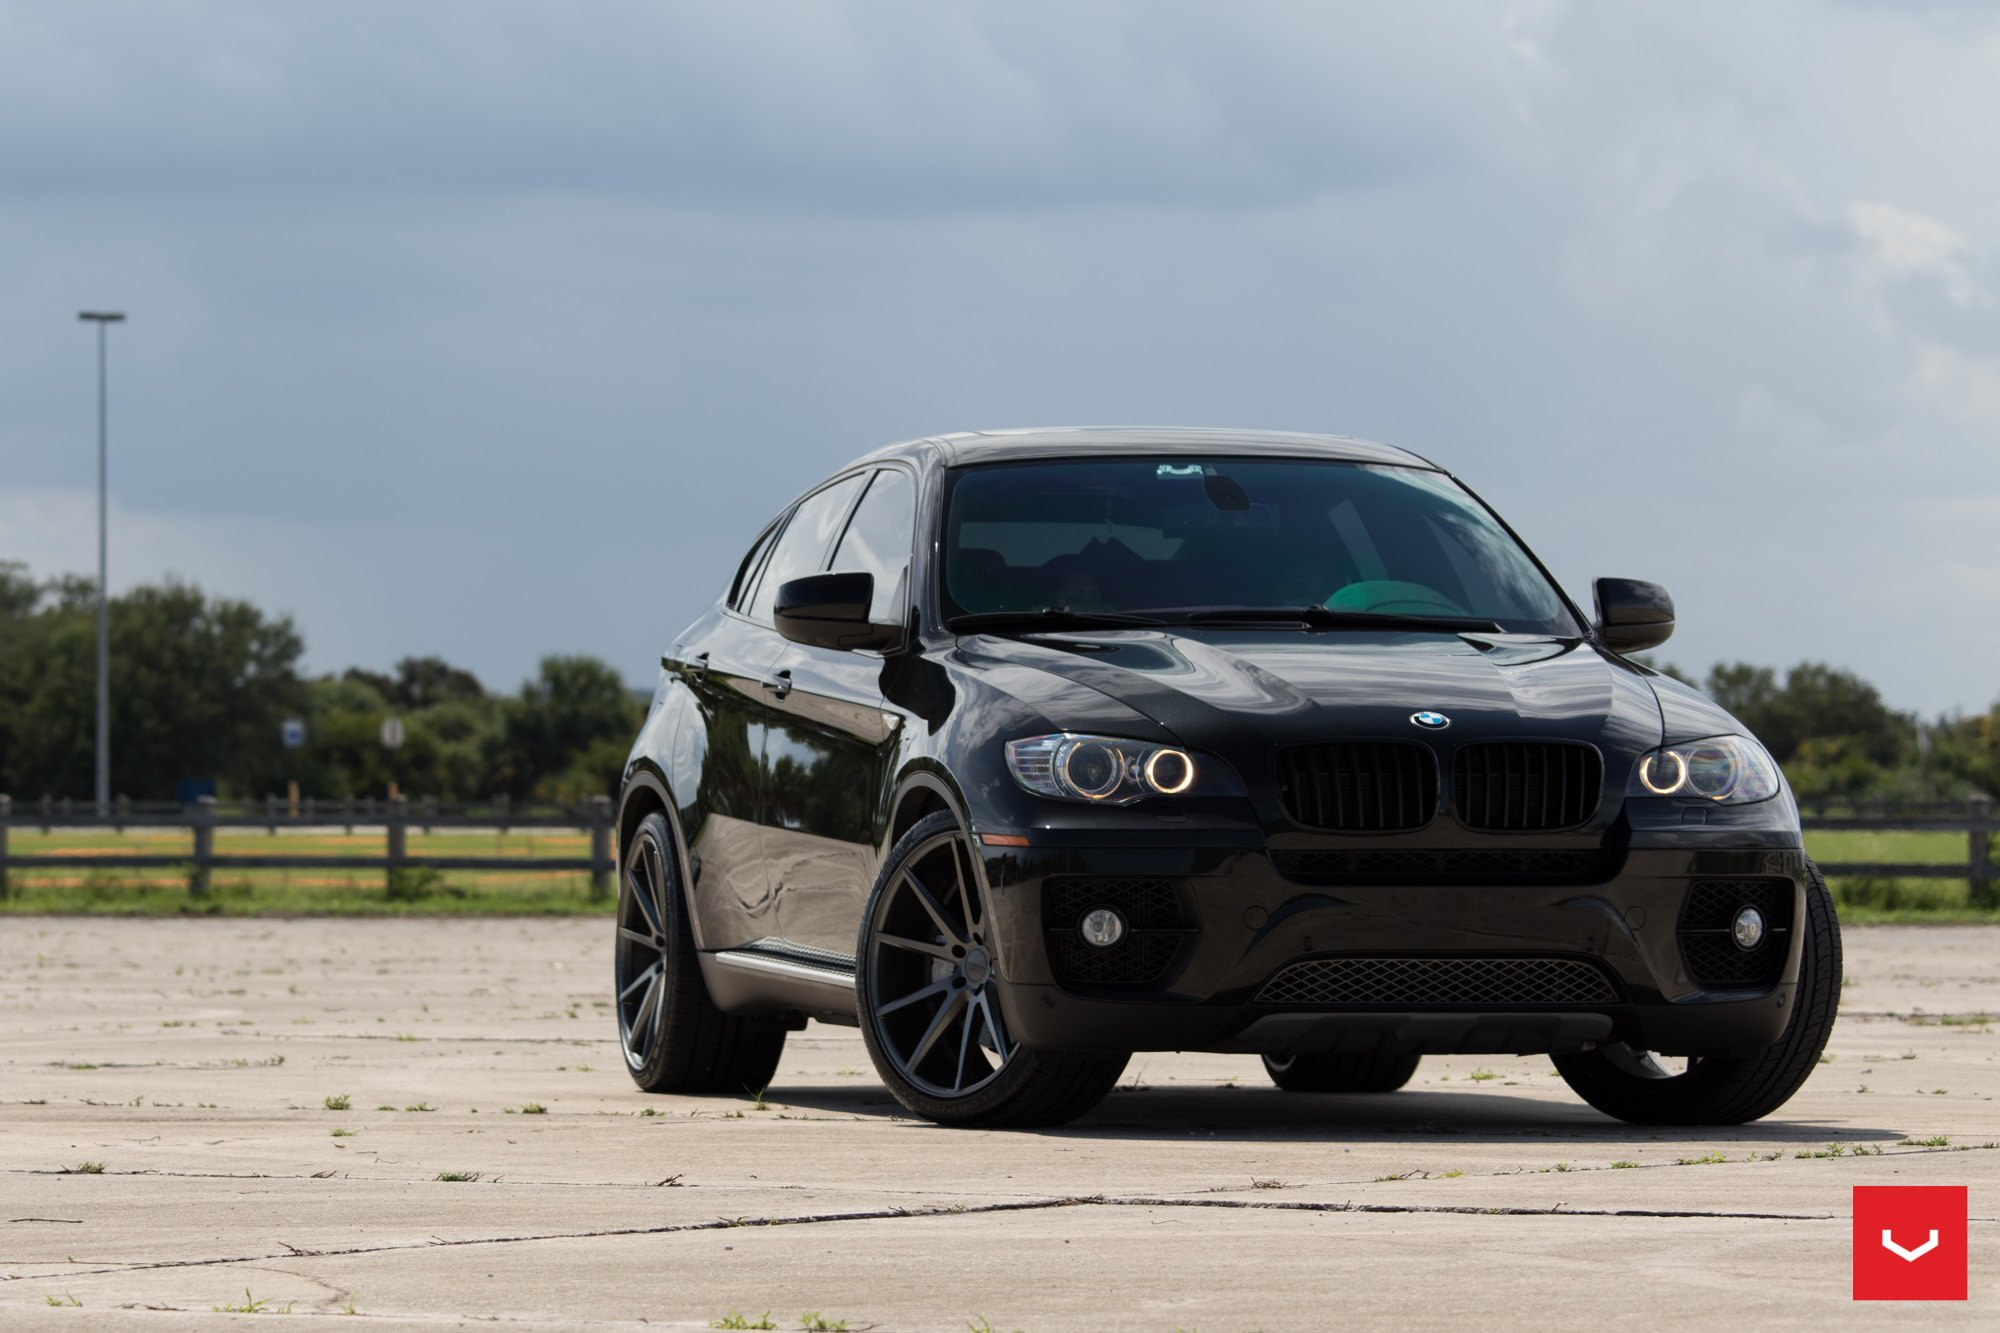 Vps 301 Custom Wheels By Vossen On A Black Bmw X6 Carid